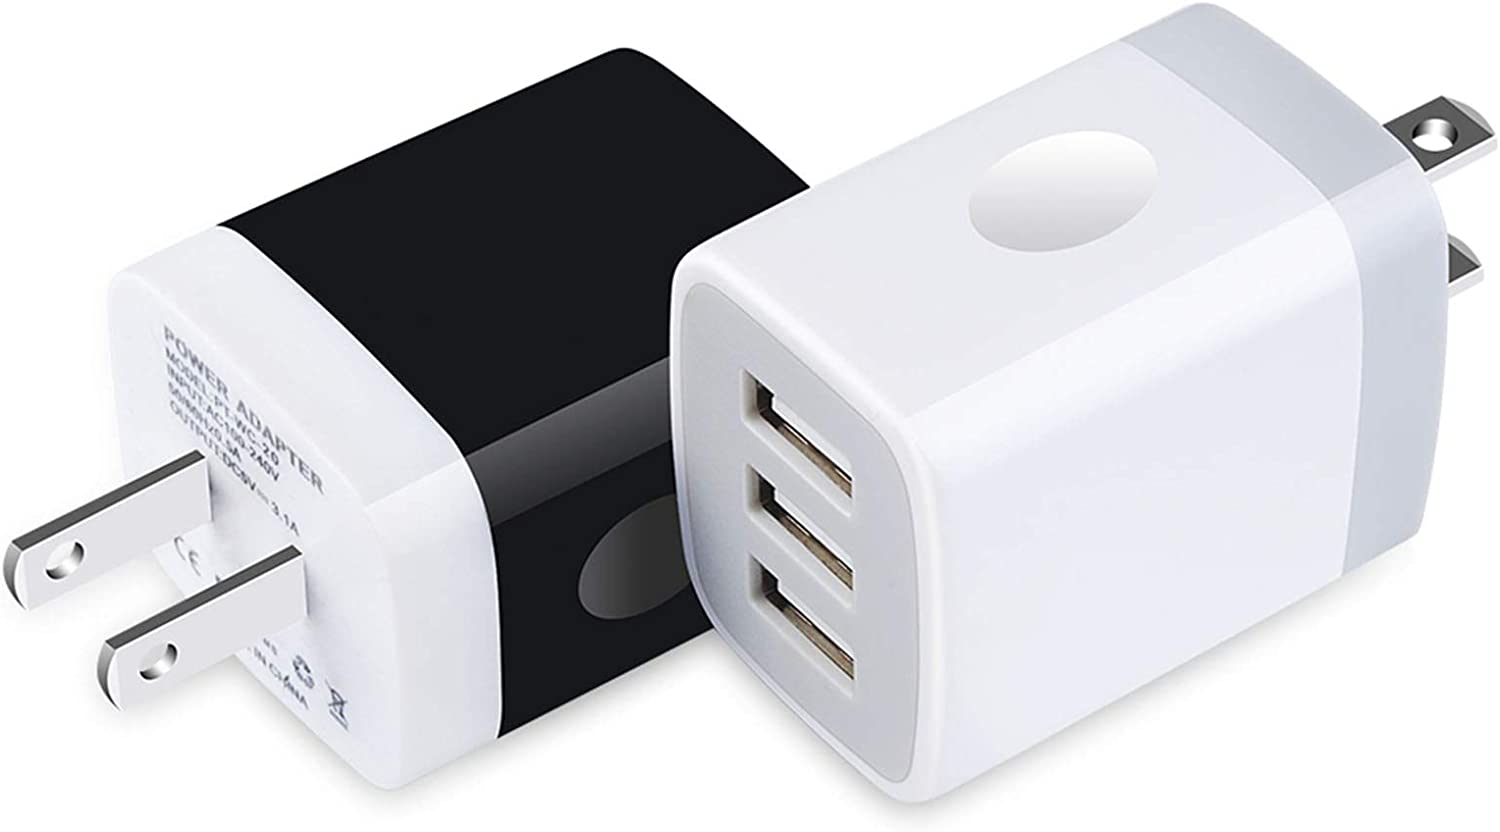 USB Wall Charger, 2-Pack 3.1A 3-Port Charger Adapter Cube for Multiple Devices Compatible with iPhone 11/10/Xs/XS Max/XR/X/8,Samsung Galaxy A50s/S10/S9/S8/S7,Note 10/9/8,LG Android Phone